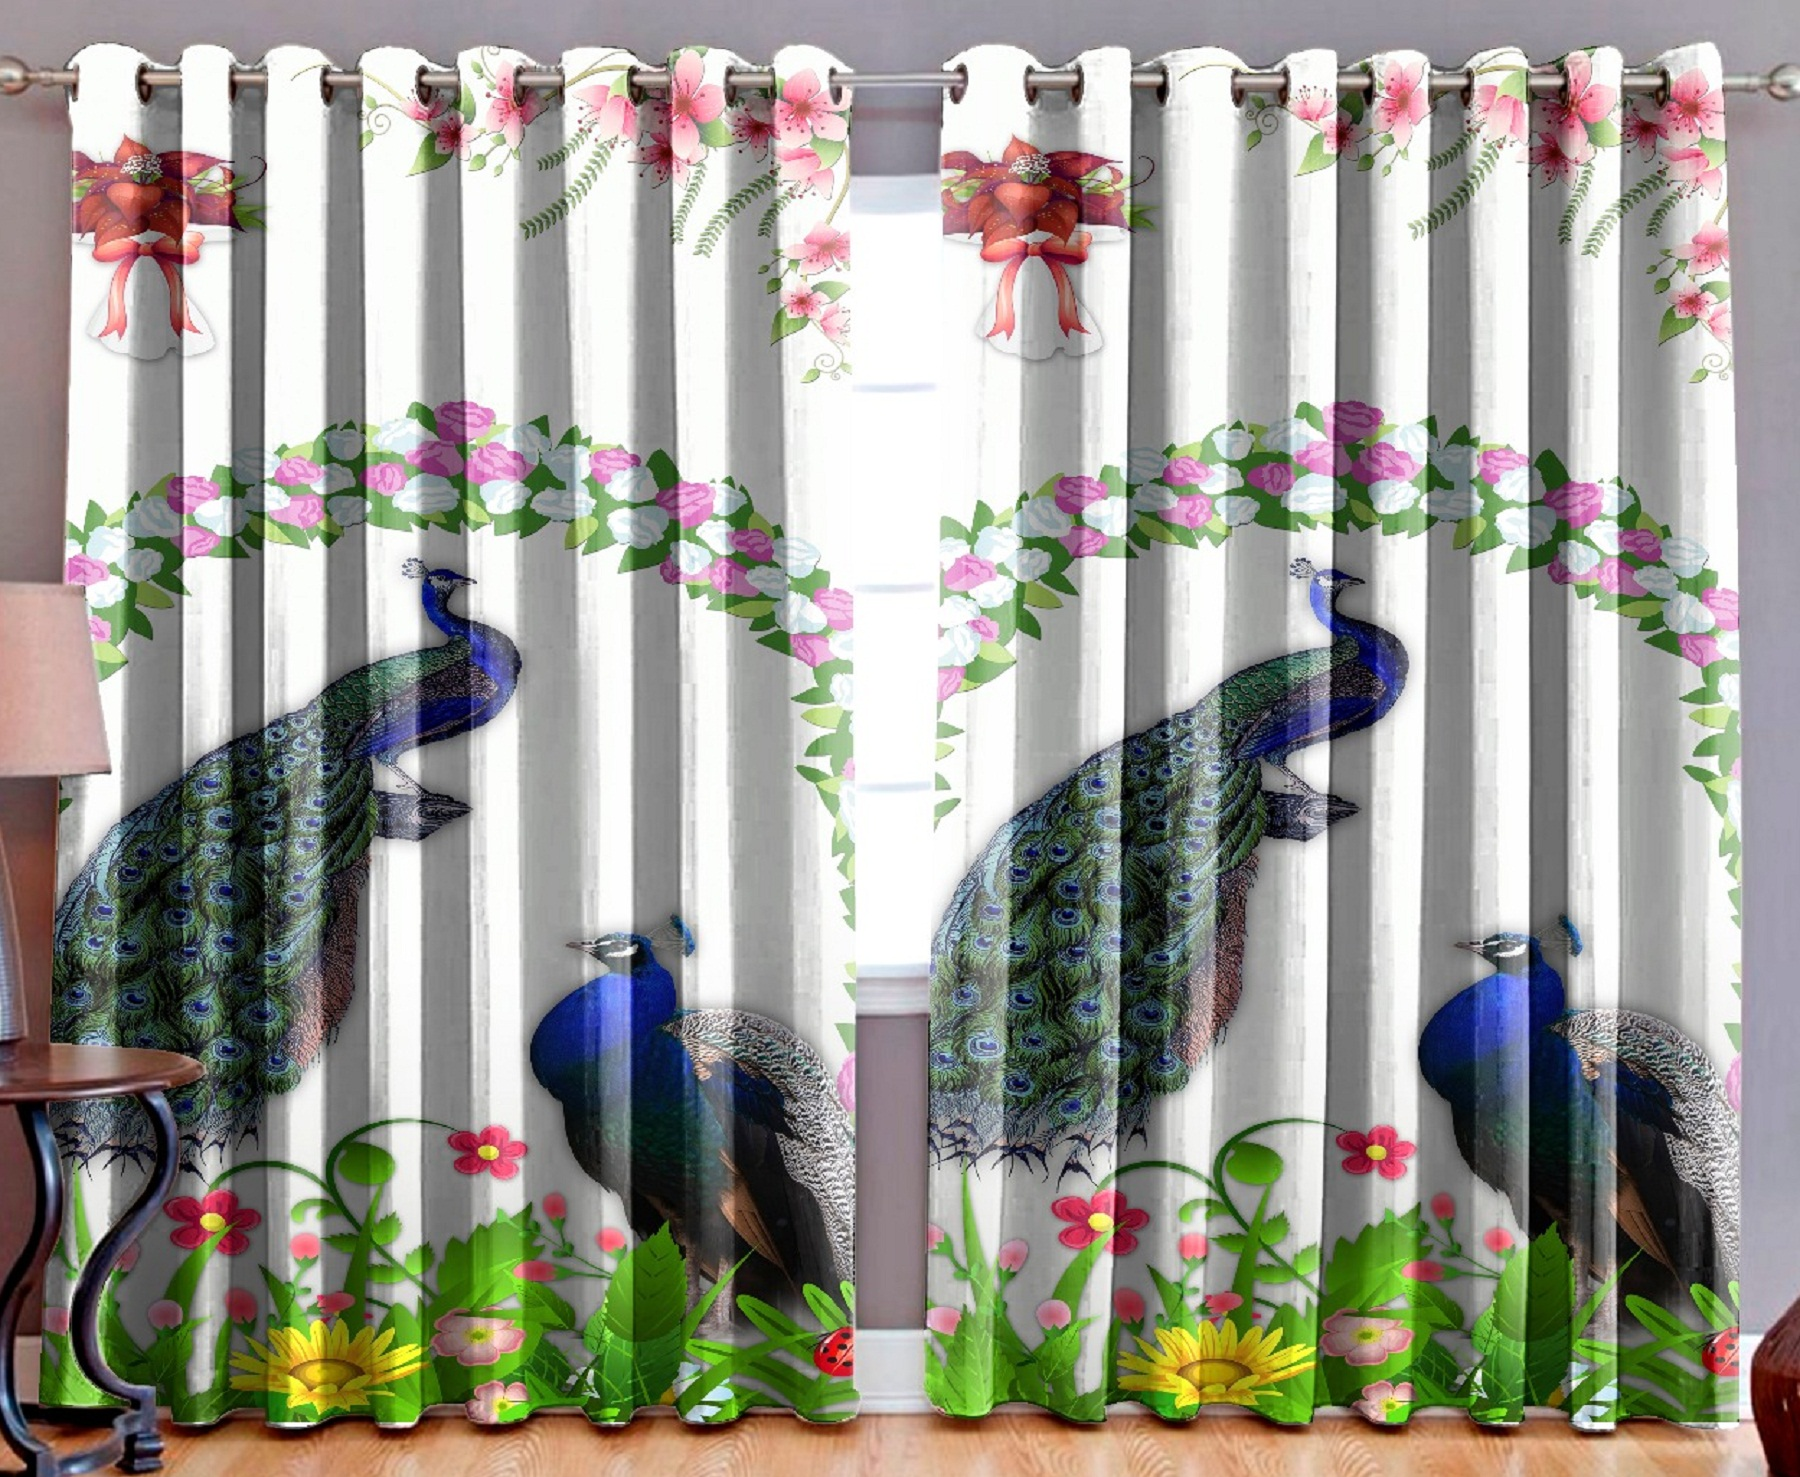 AKR CREATION Heavy long crush door size Curtain 213 cm (7 ft) Pack of 2